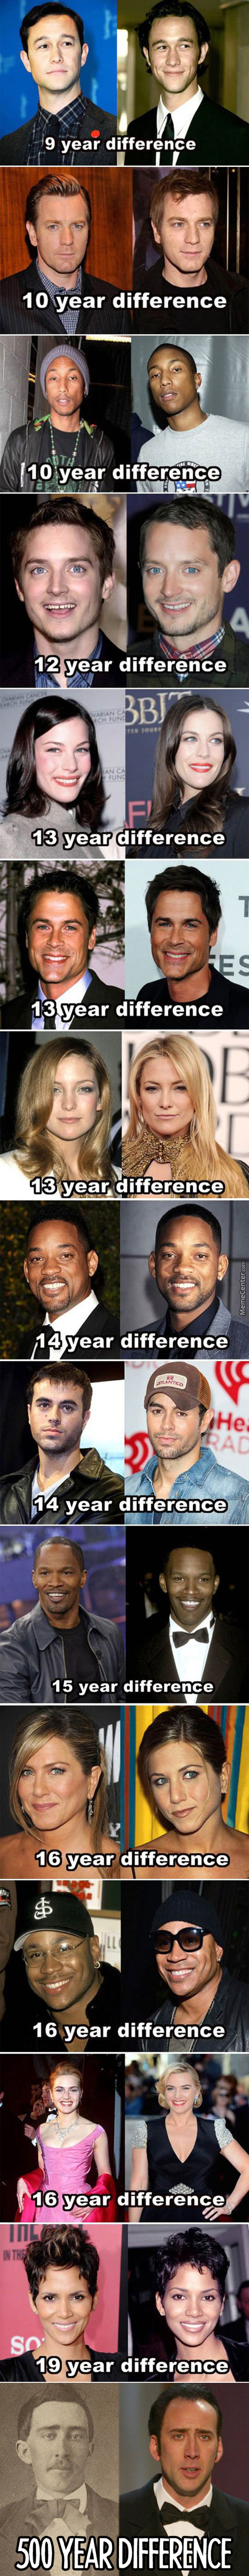 Celebrities Don't Seem To Age That Much..